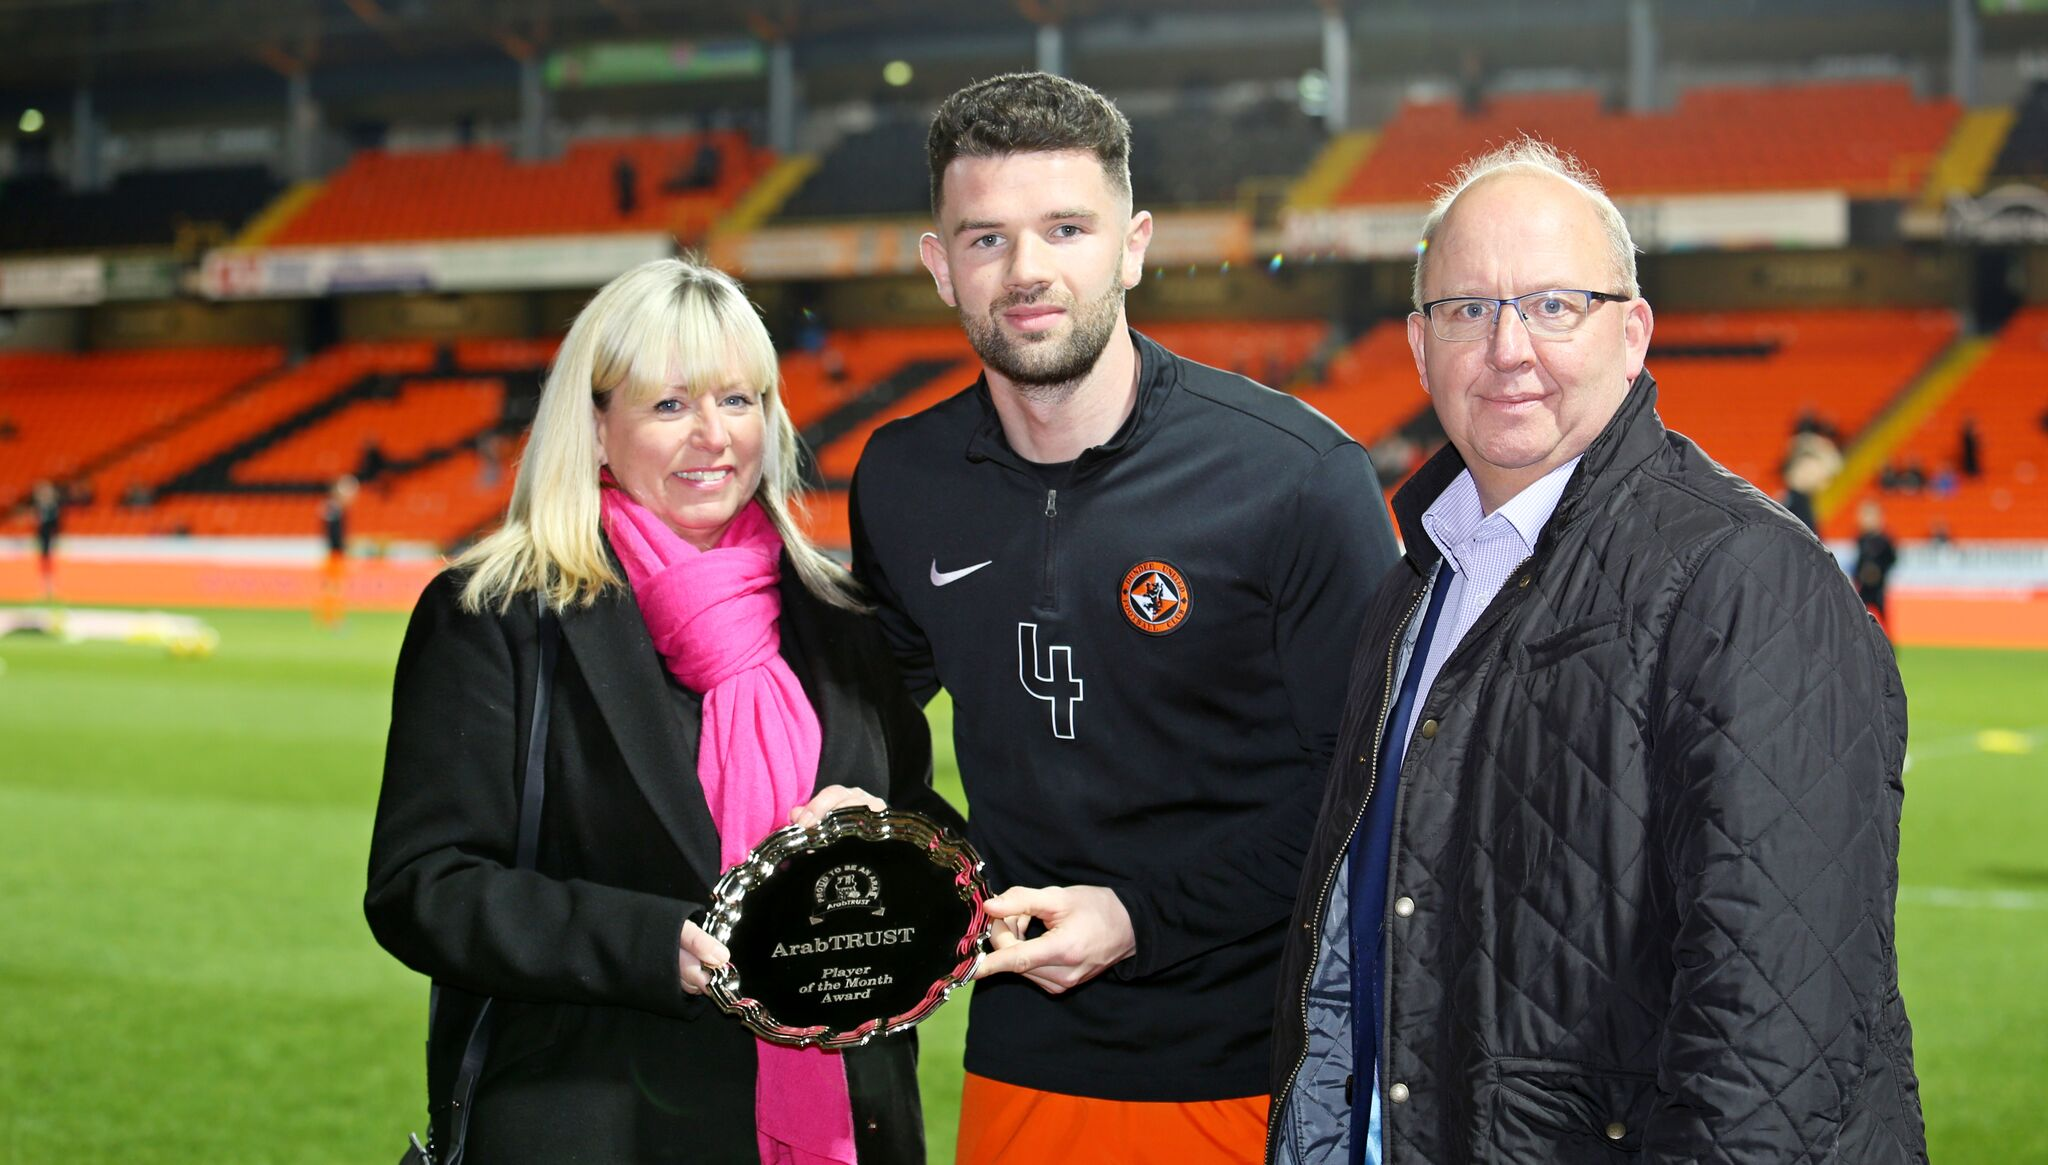 Mark Durnan Receiving his ArabTRUST Player of the Month Award for February